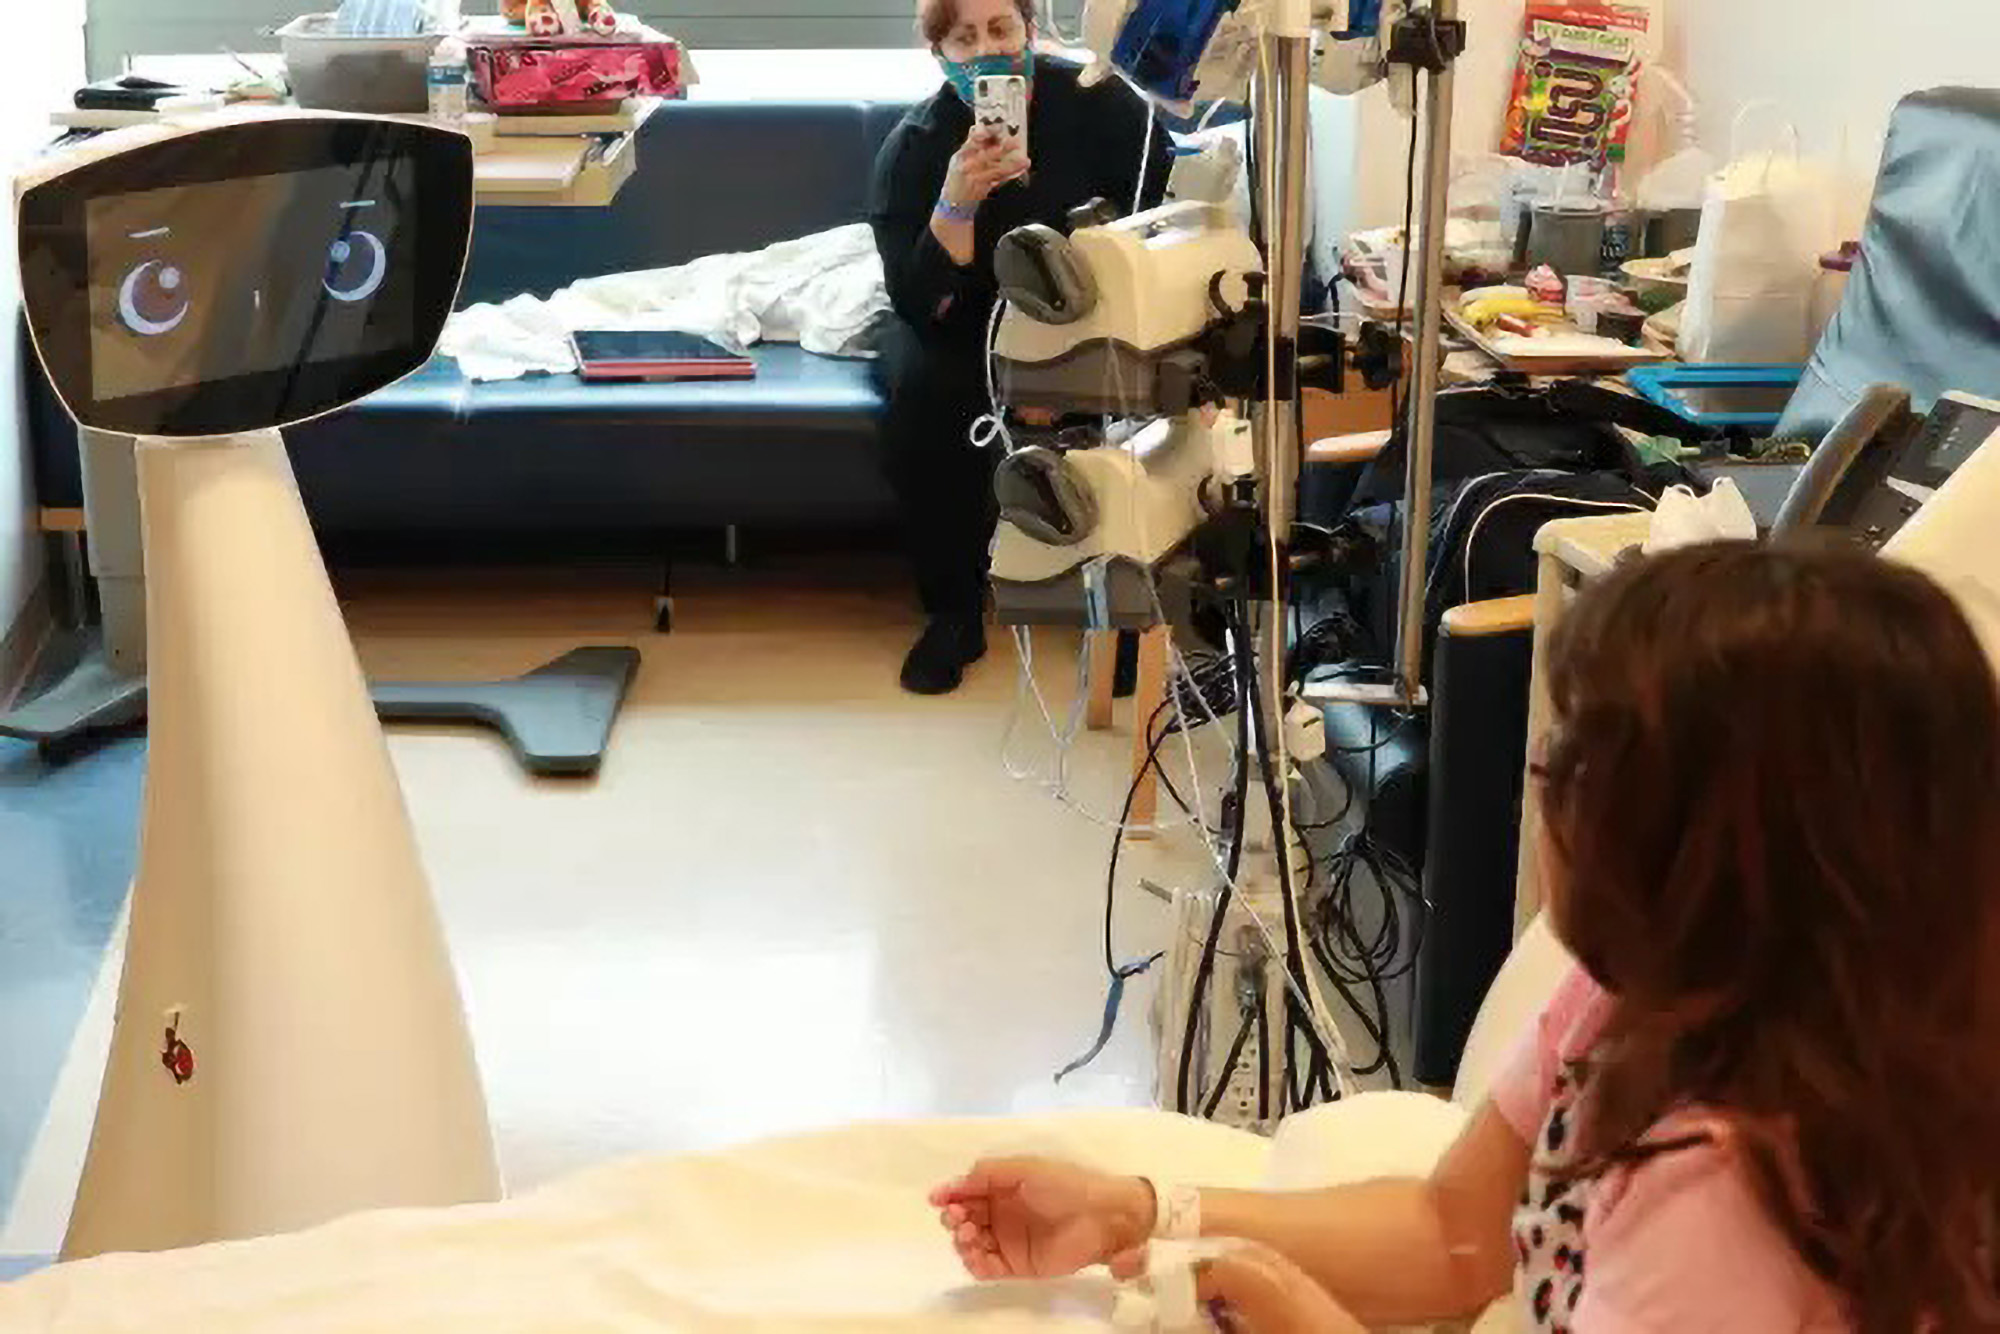 VIDEO: Robin The Robot Visits Hospitalized Kids To Make Stay More Fun